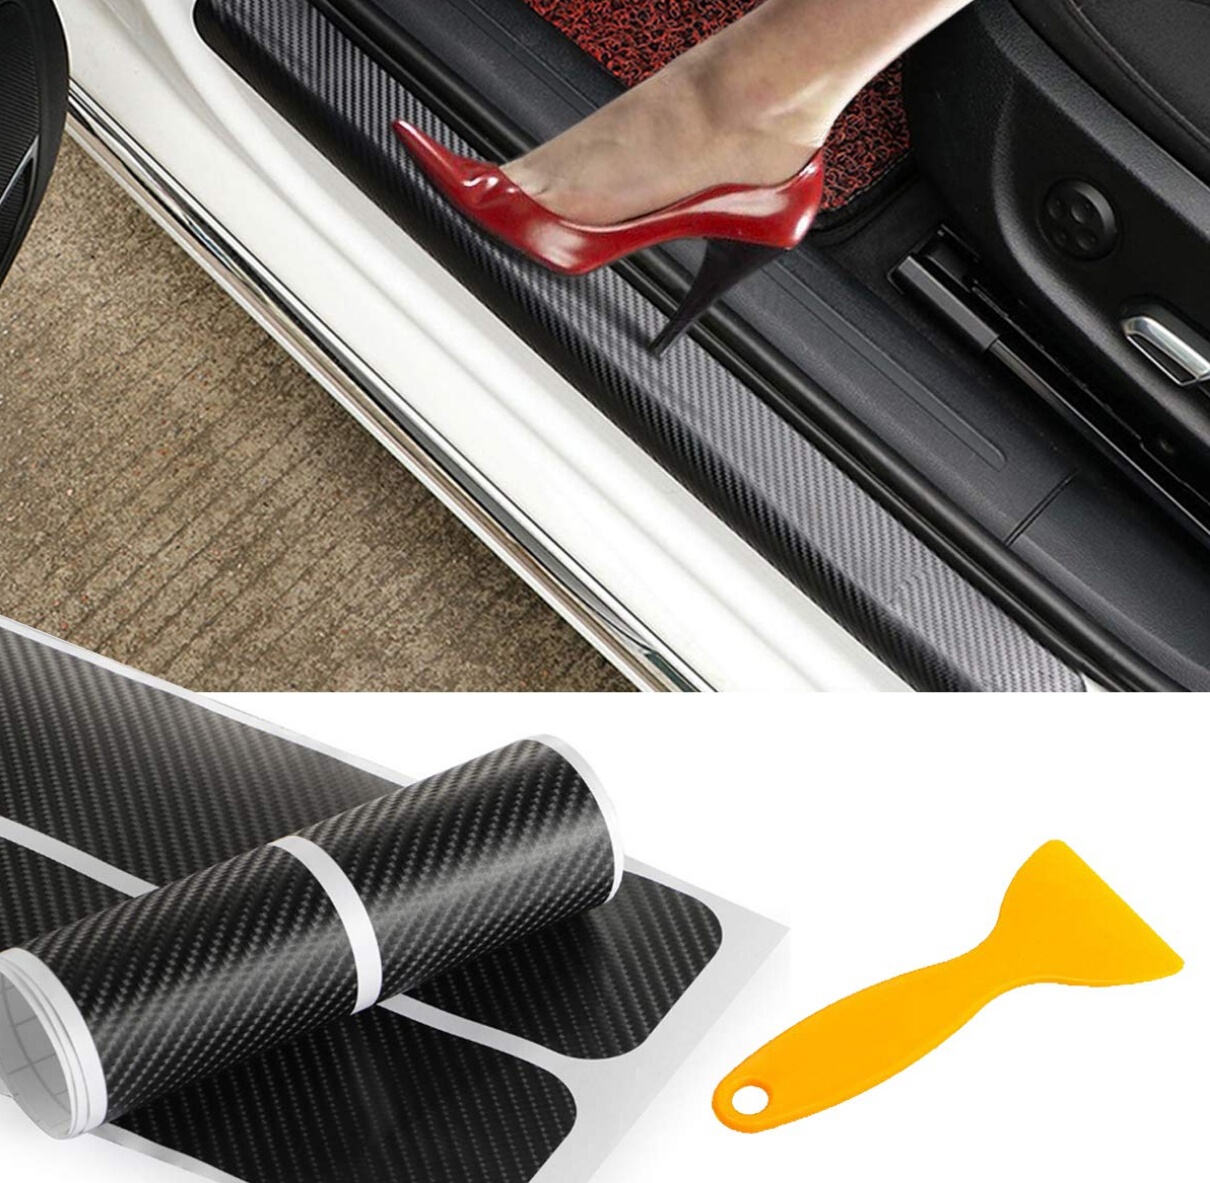 4pcs Door Carbon Fiber Car Scuff Plate sticker Vinyl Decal sticker for mazda MS mazda 2 mazda 3 mazda 6 M5 cx 5-in Car Tax Disc Holders from Automobiles & Motorcycles